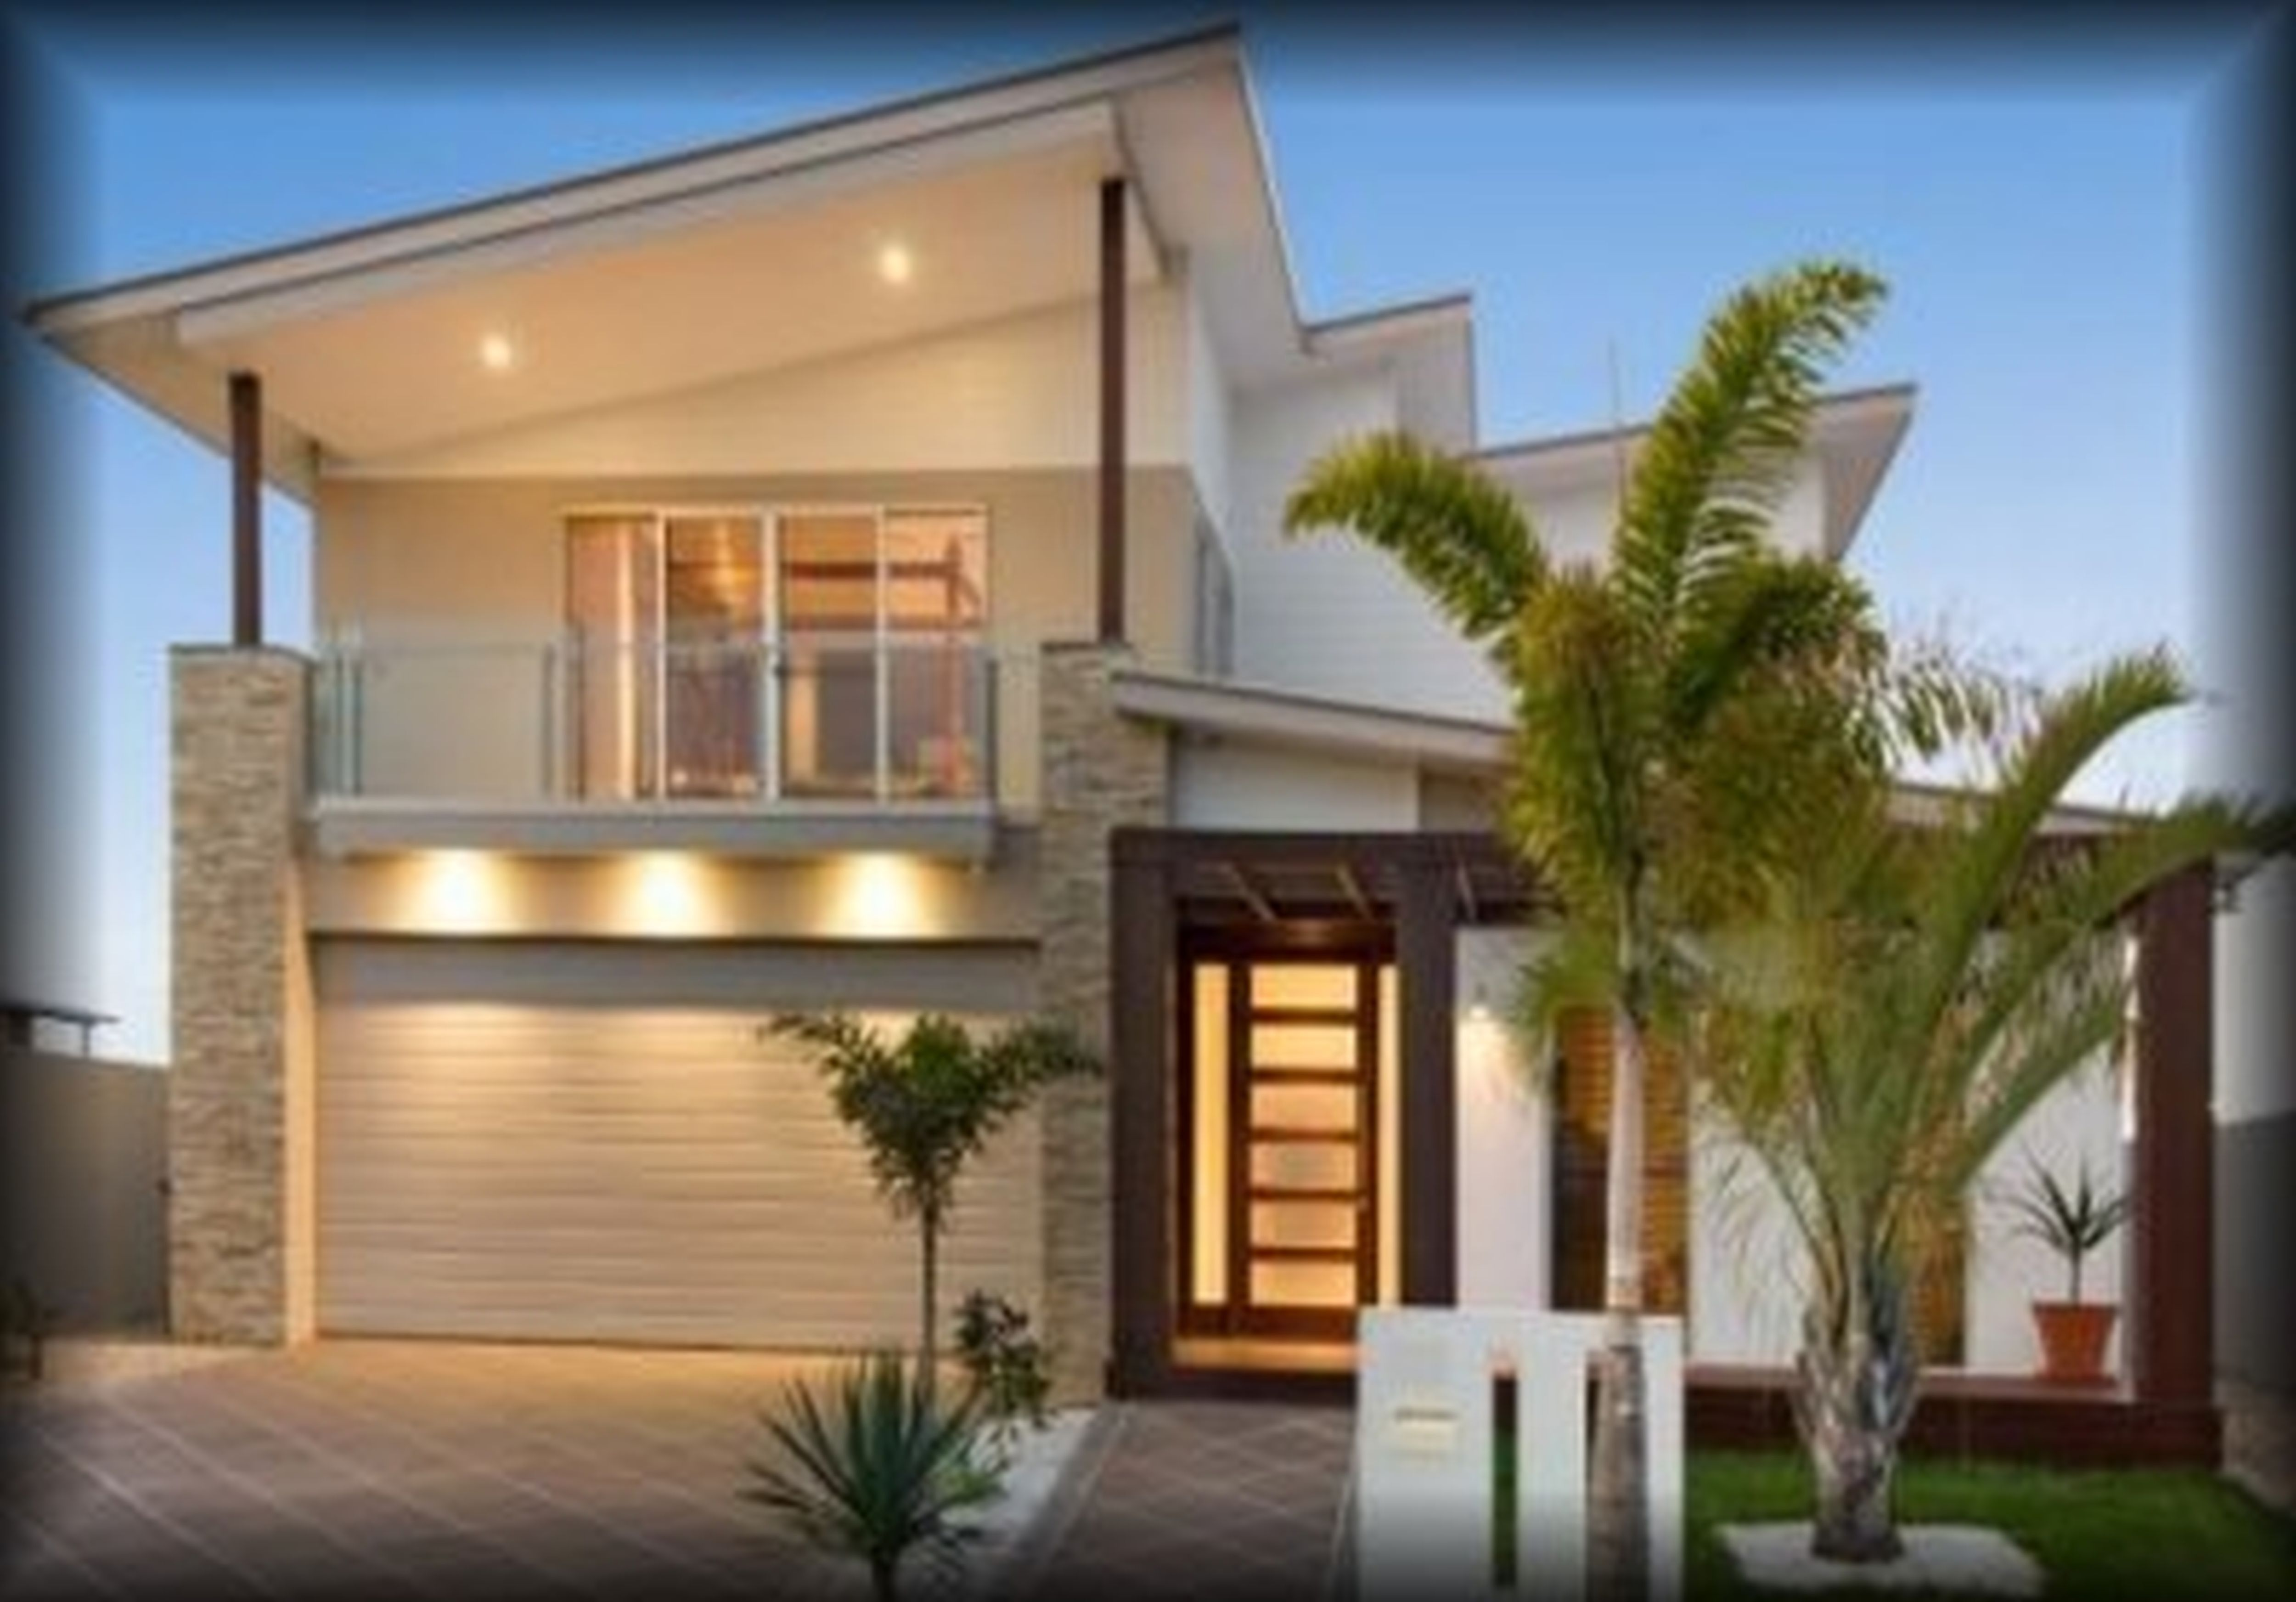 Super Not Until N Small Modern House Plans Kids Architecture Largest Home Design Picture Inspirations Pitcheantrous